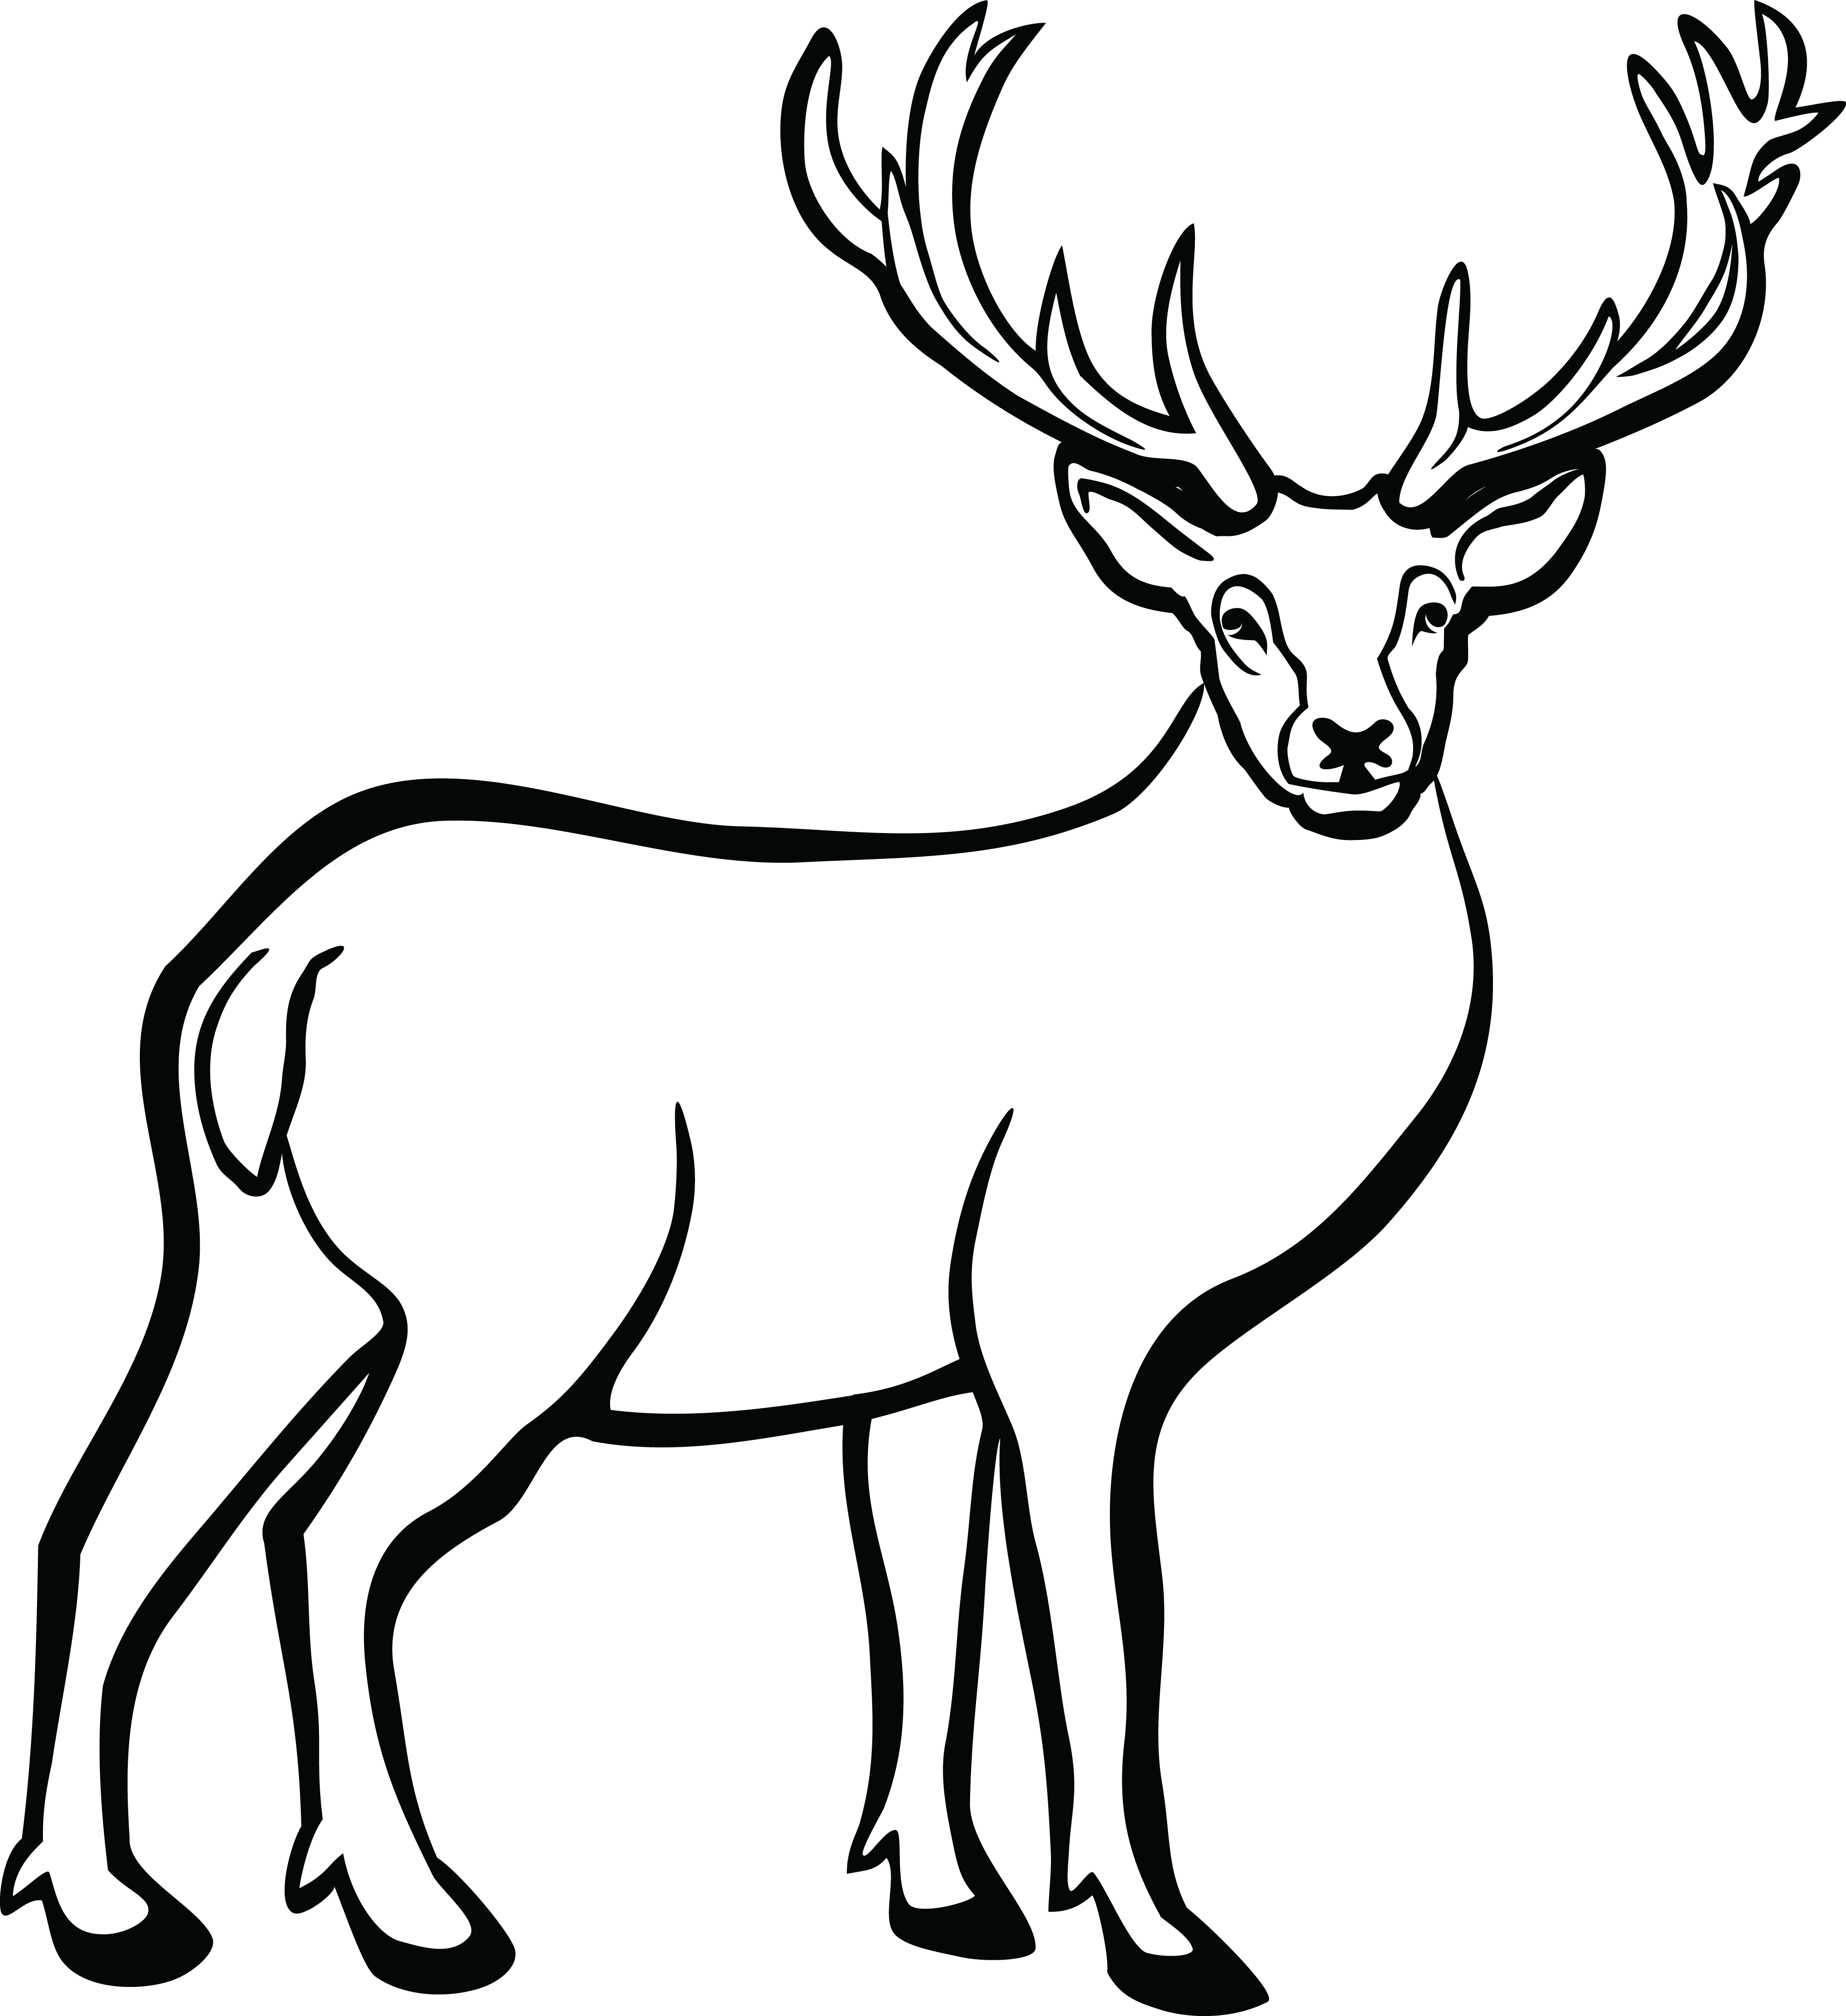 Deer heart clipart png stock Deer Black And White | Free download best Deer Black And White on ... png stock